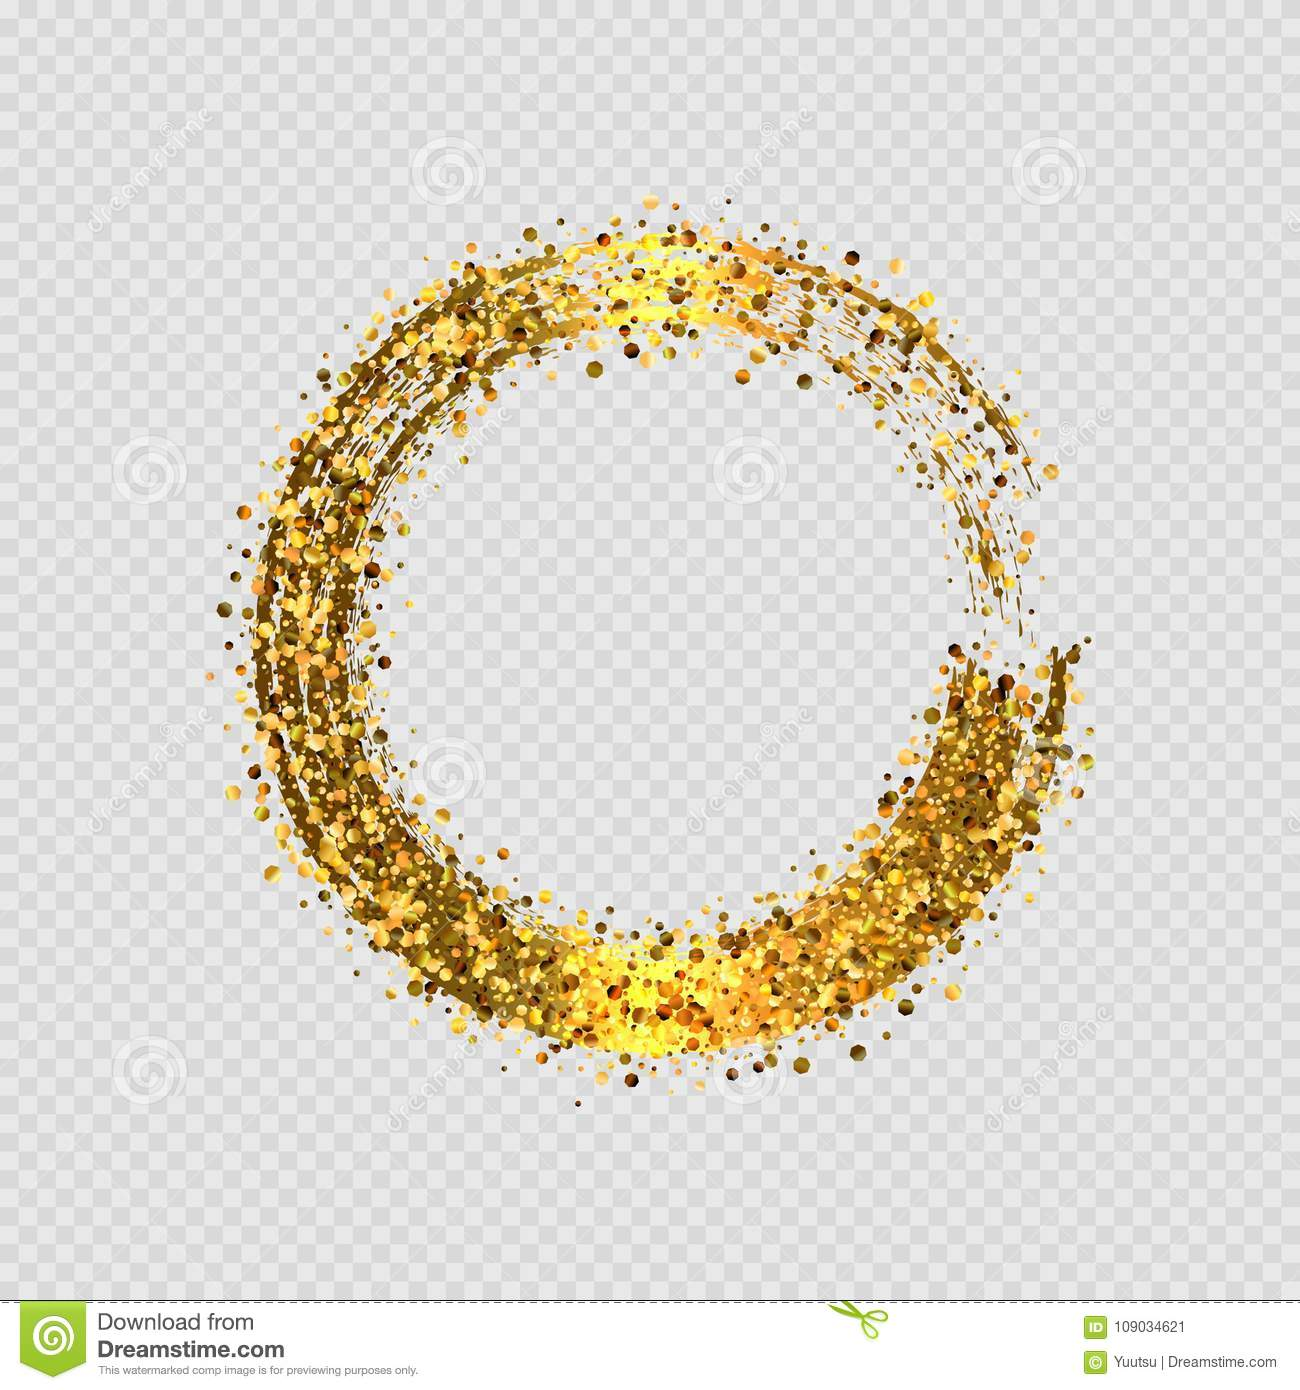 e7123192938 Vector eps 10 shiny golden glitter round decorative frame design isolated  on transparent background